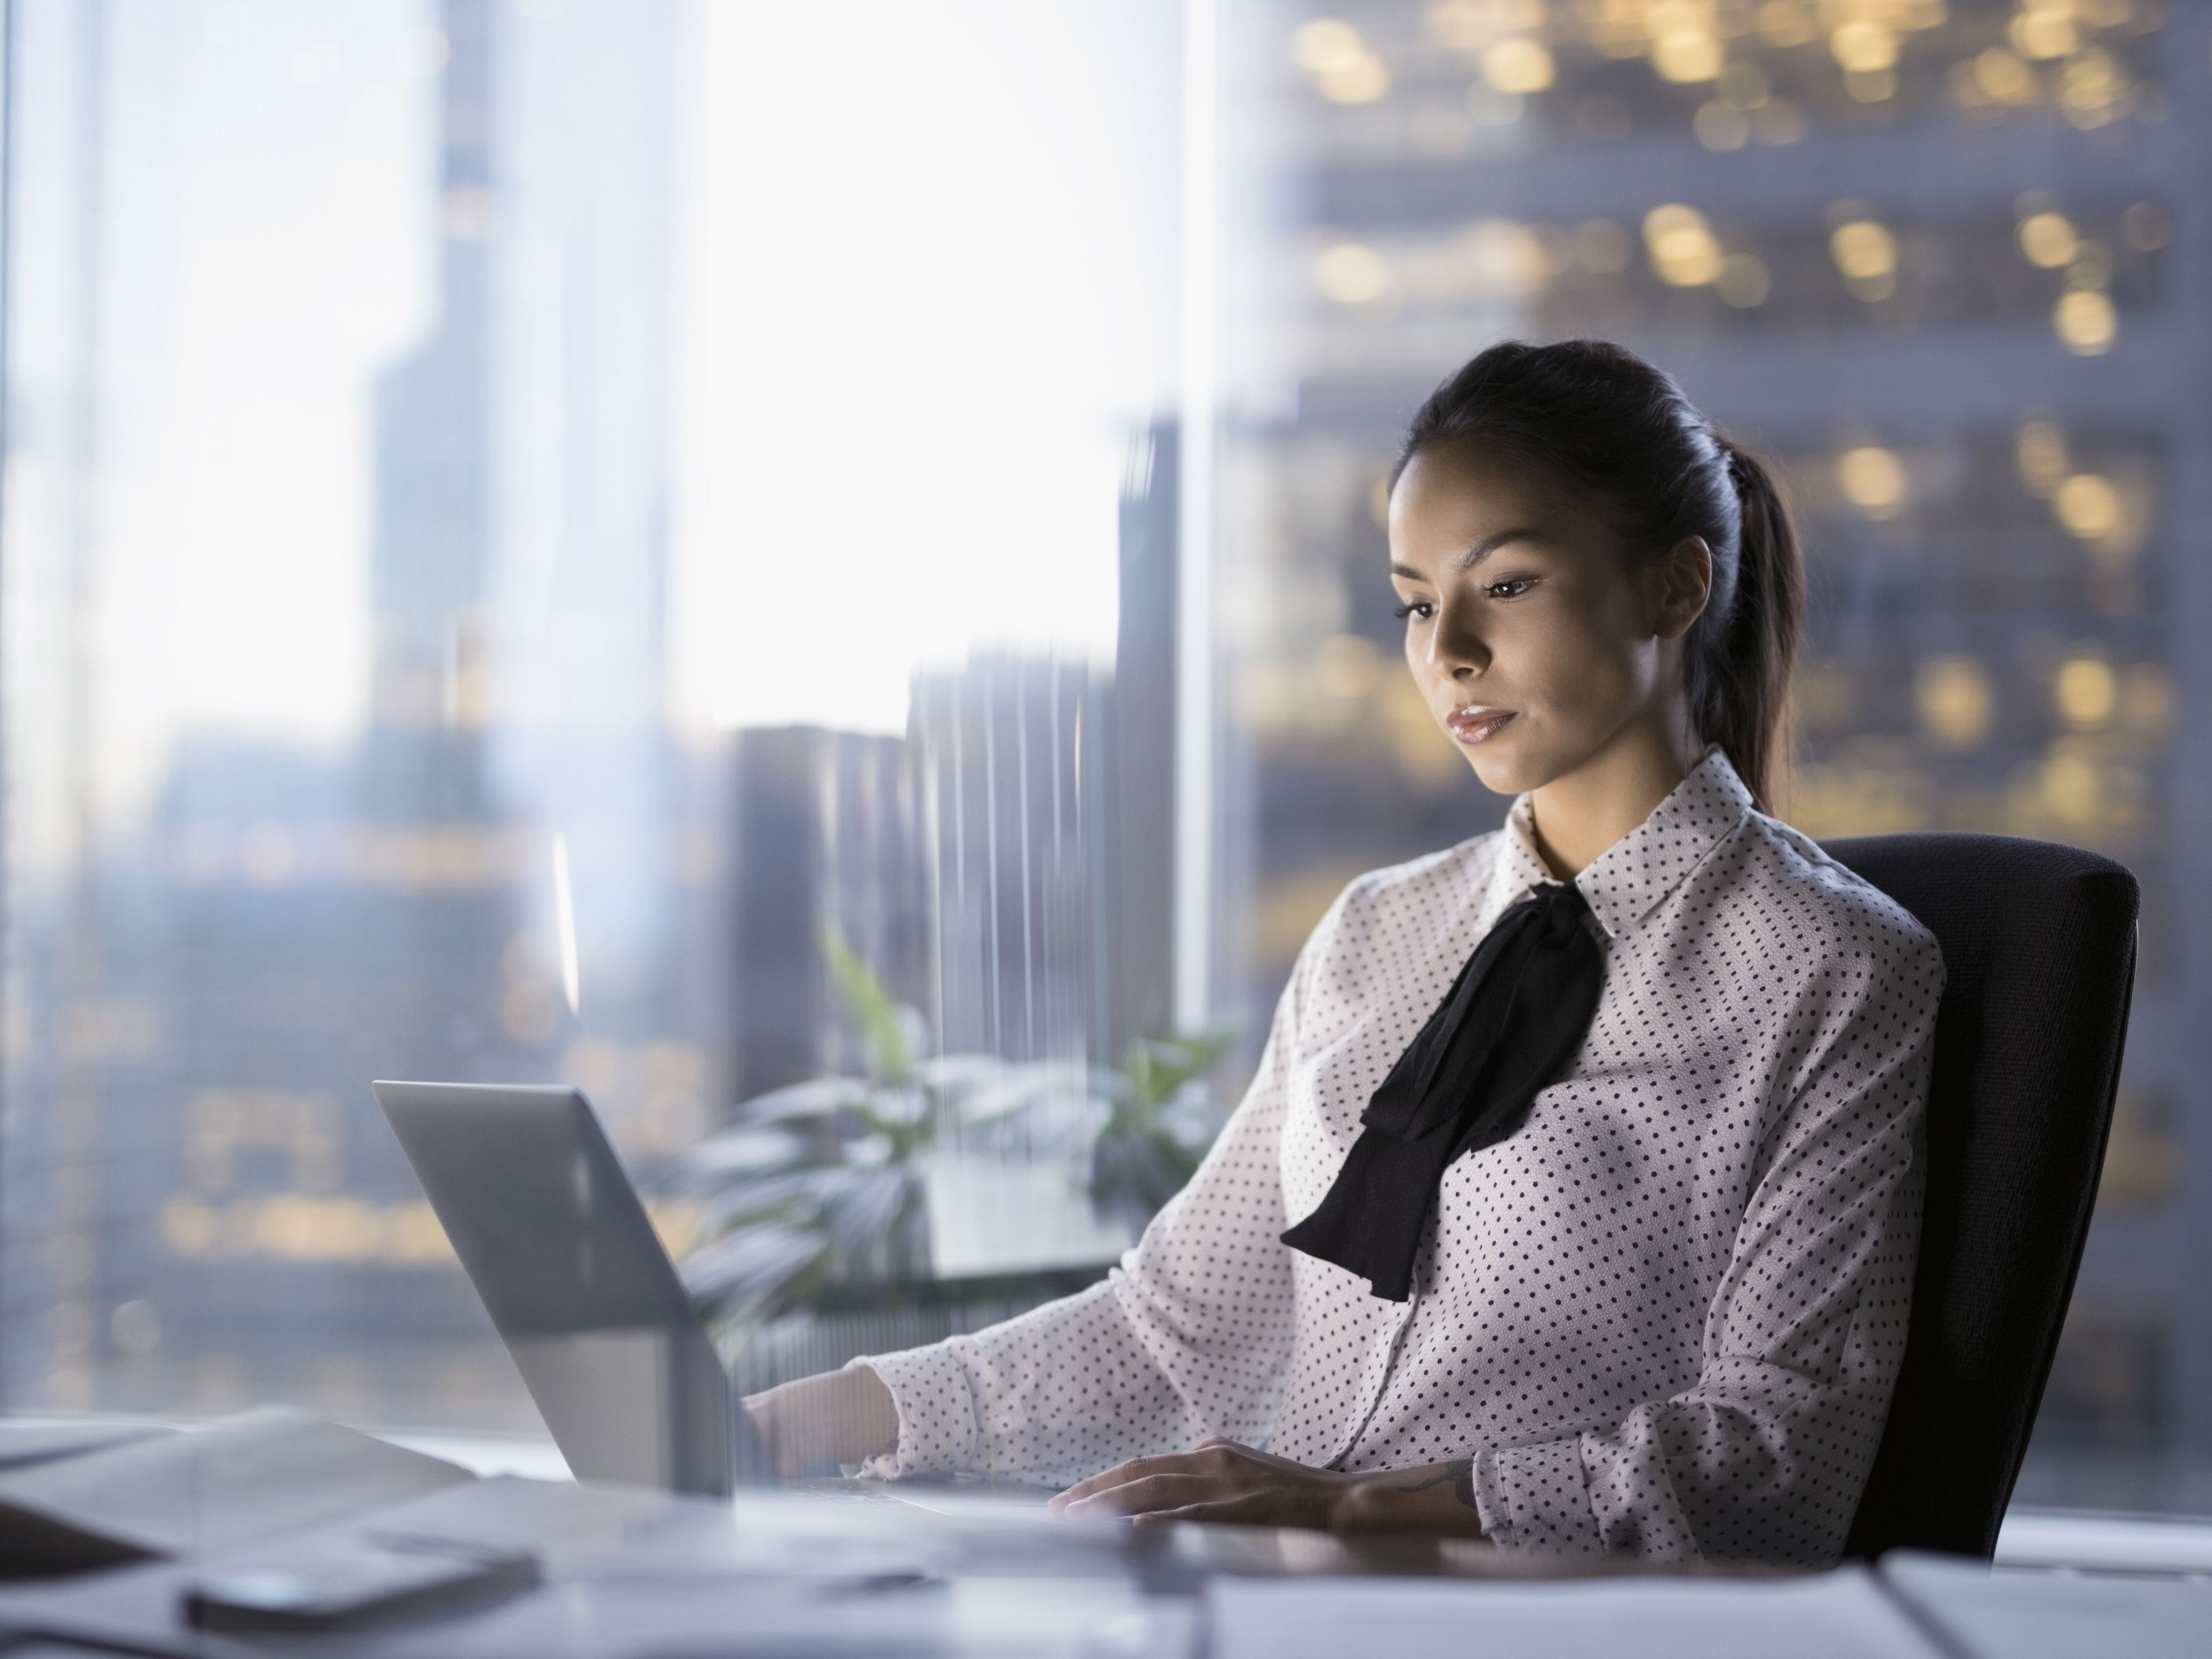 female-lawyer-working-late-at-laptop-in-urban-office-697540591-59a4712968e1a20013536419